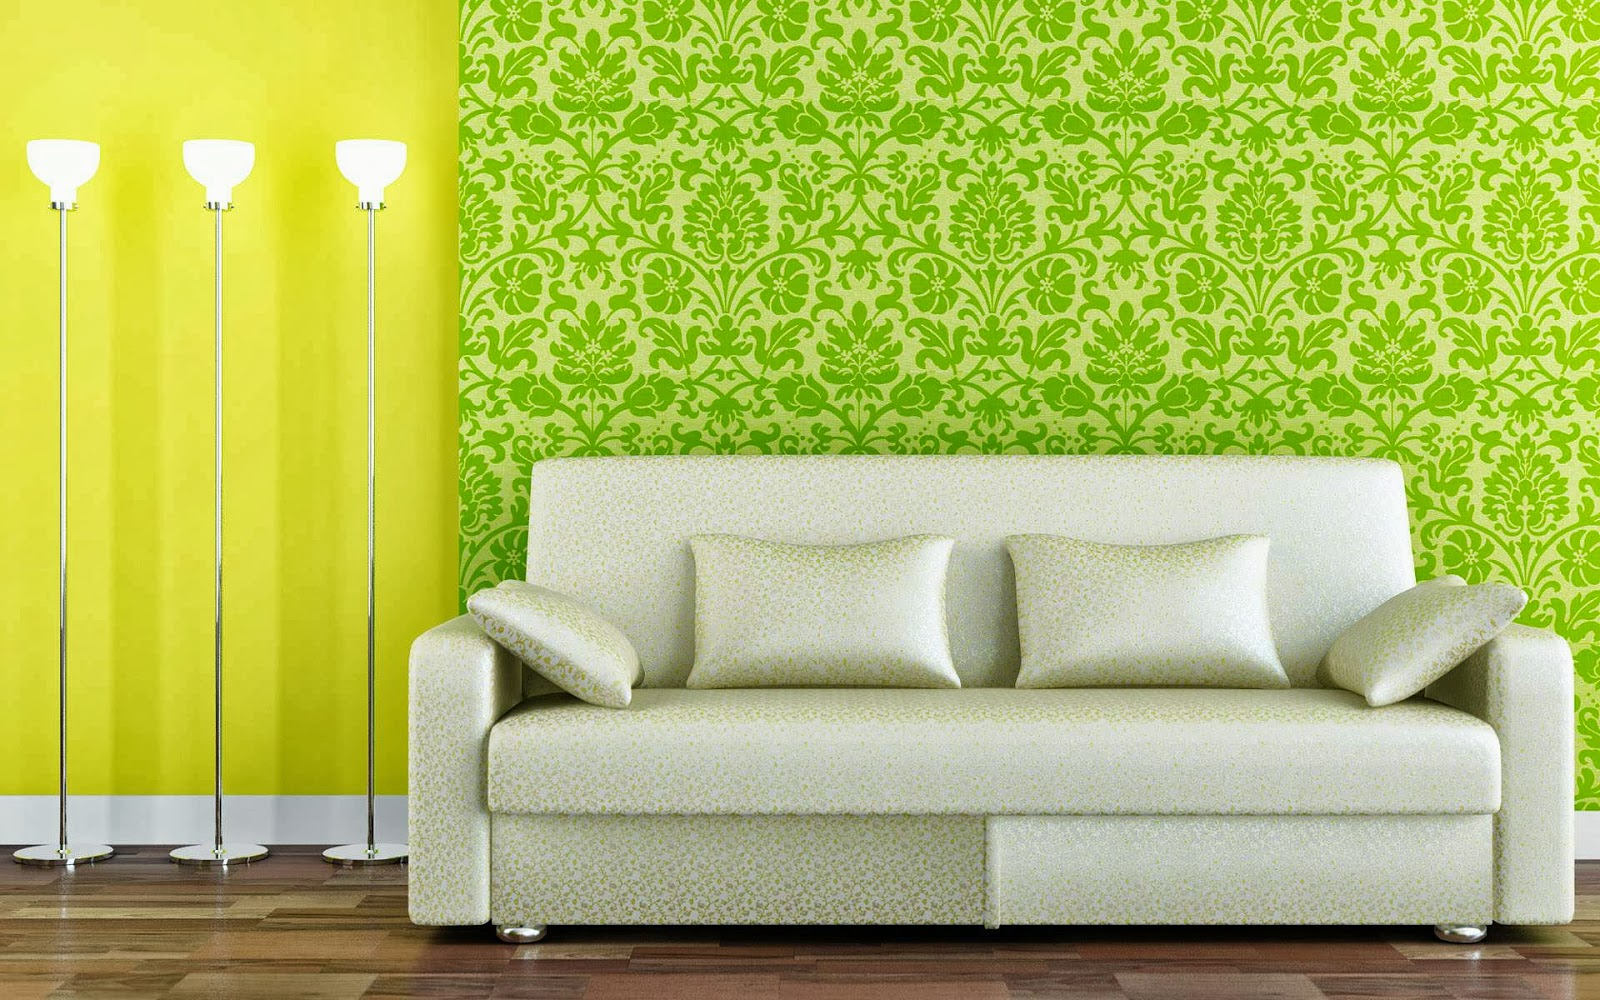 Wall Art Design Decals Stylish Ideas Wall Stickers For Easy - Wall paint designs for living room